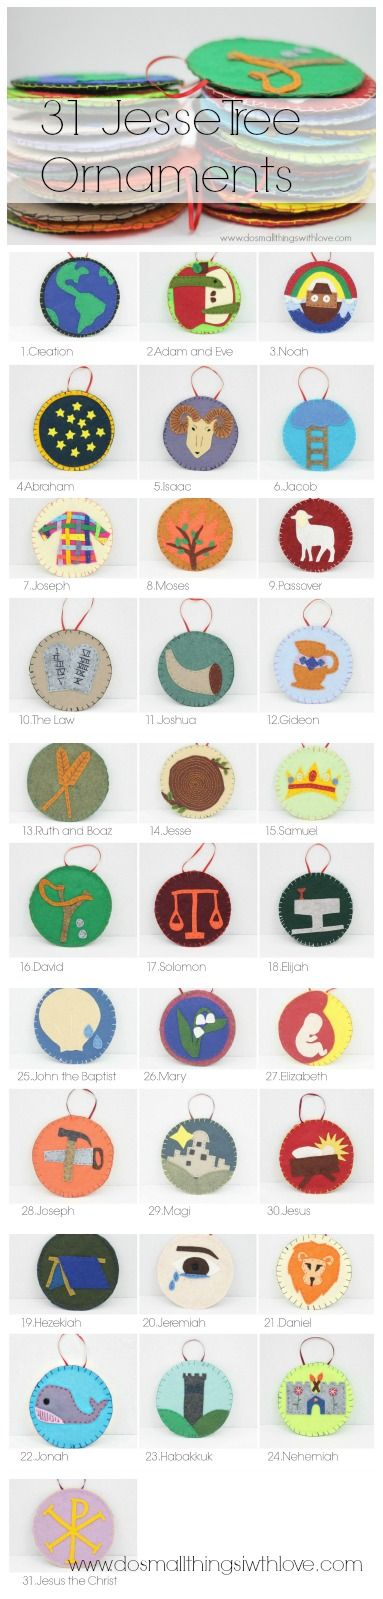 jesse tree ornament templates - 25 best ideas about jesse tree ornaments on pinterest